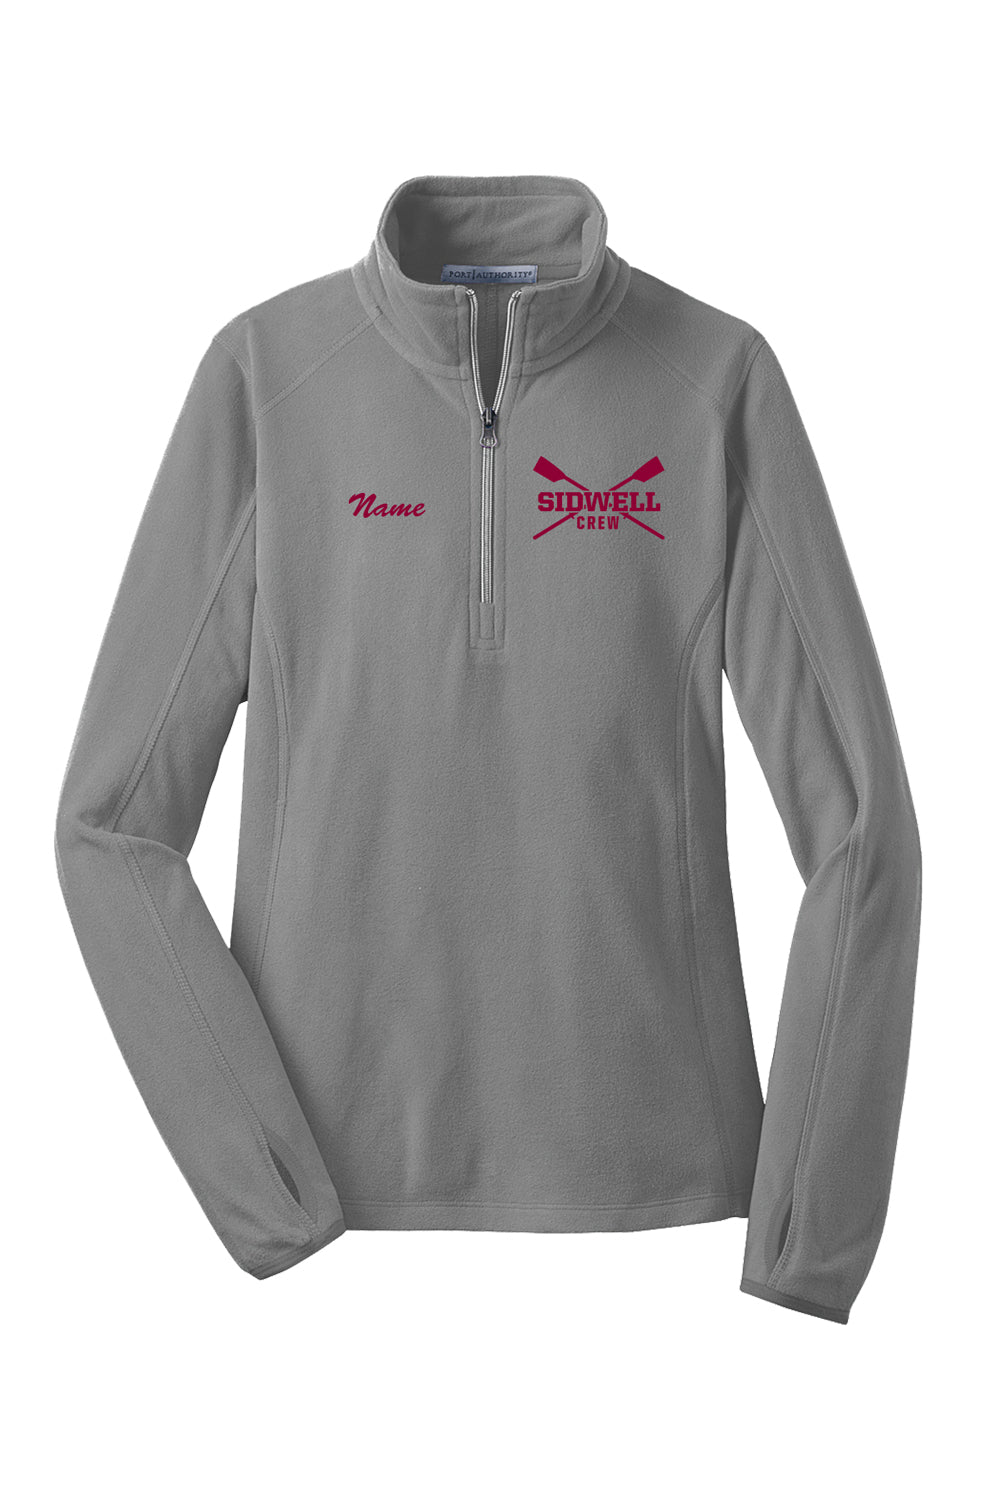 1/4 Zip Sidwell Friends Rowing Fleece Pullover